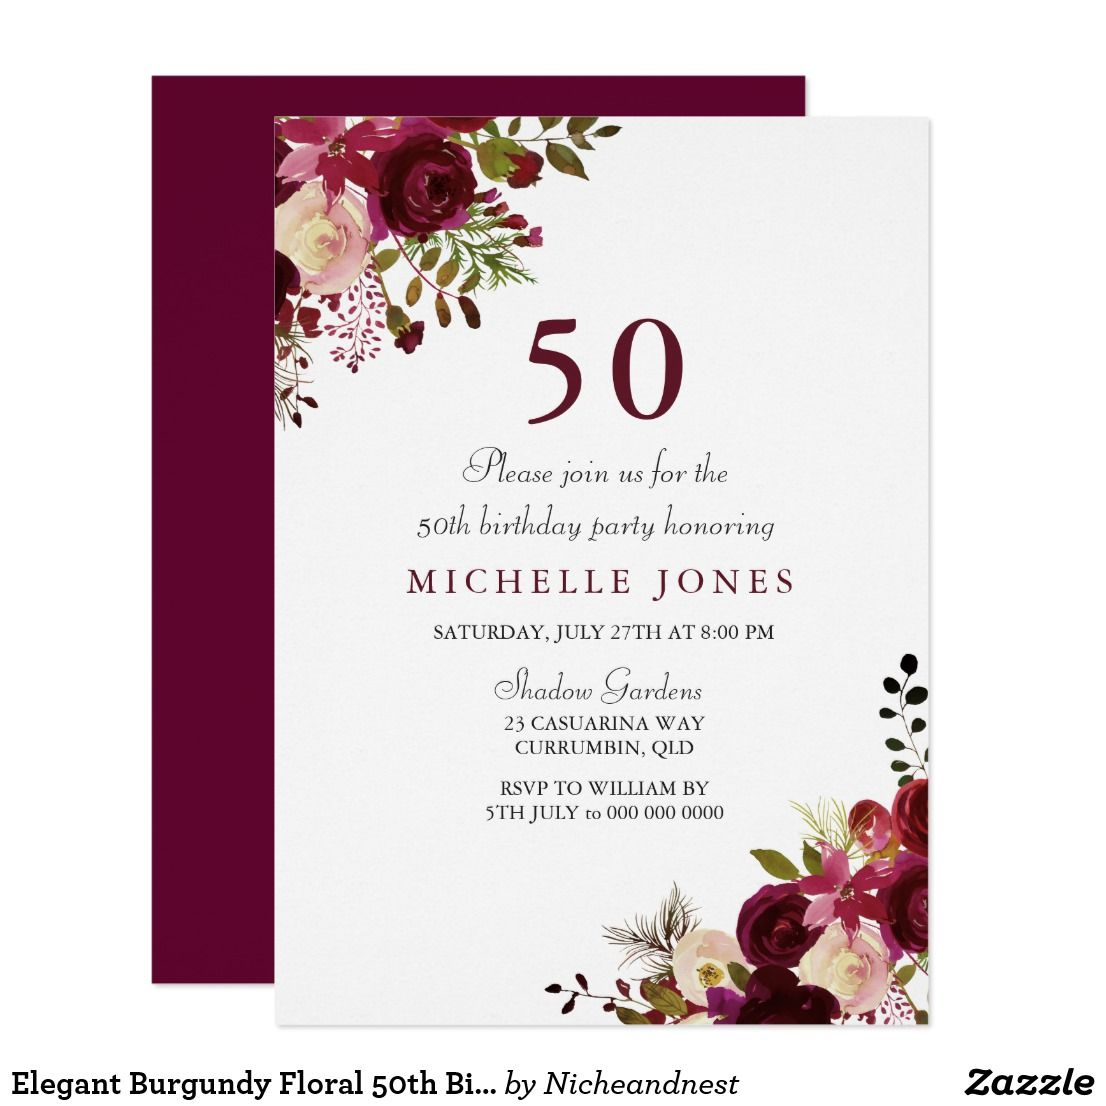 Elegant Burgundy Floral 50th Birthday Invitation | 50th birthday ...